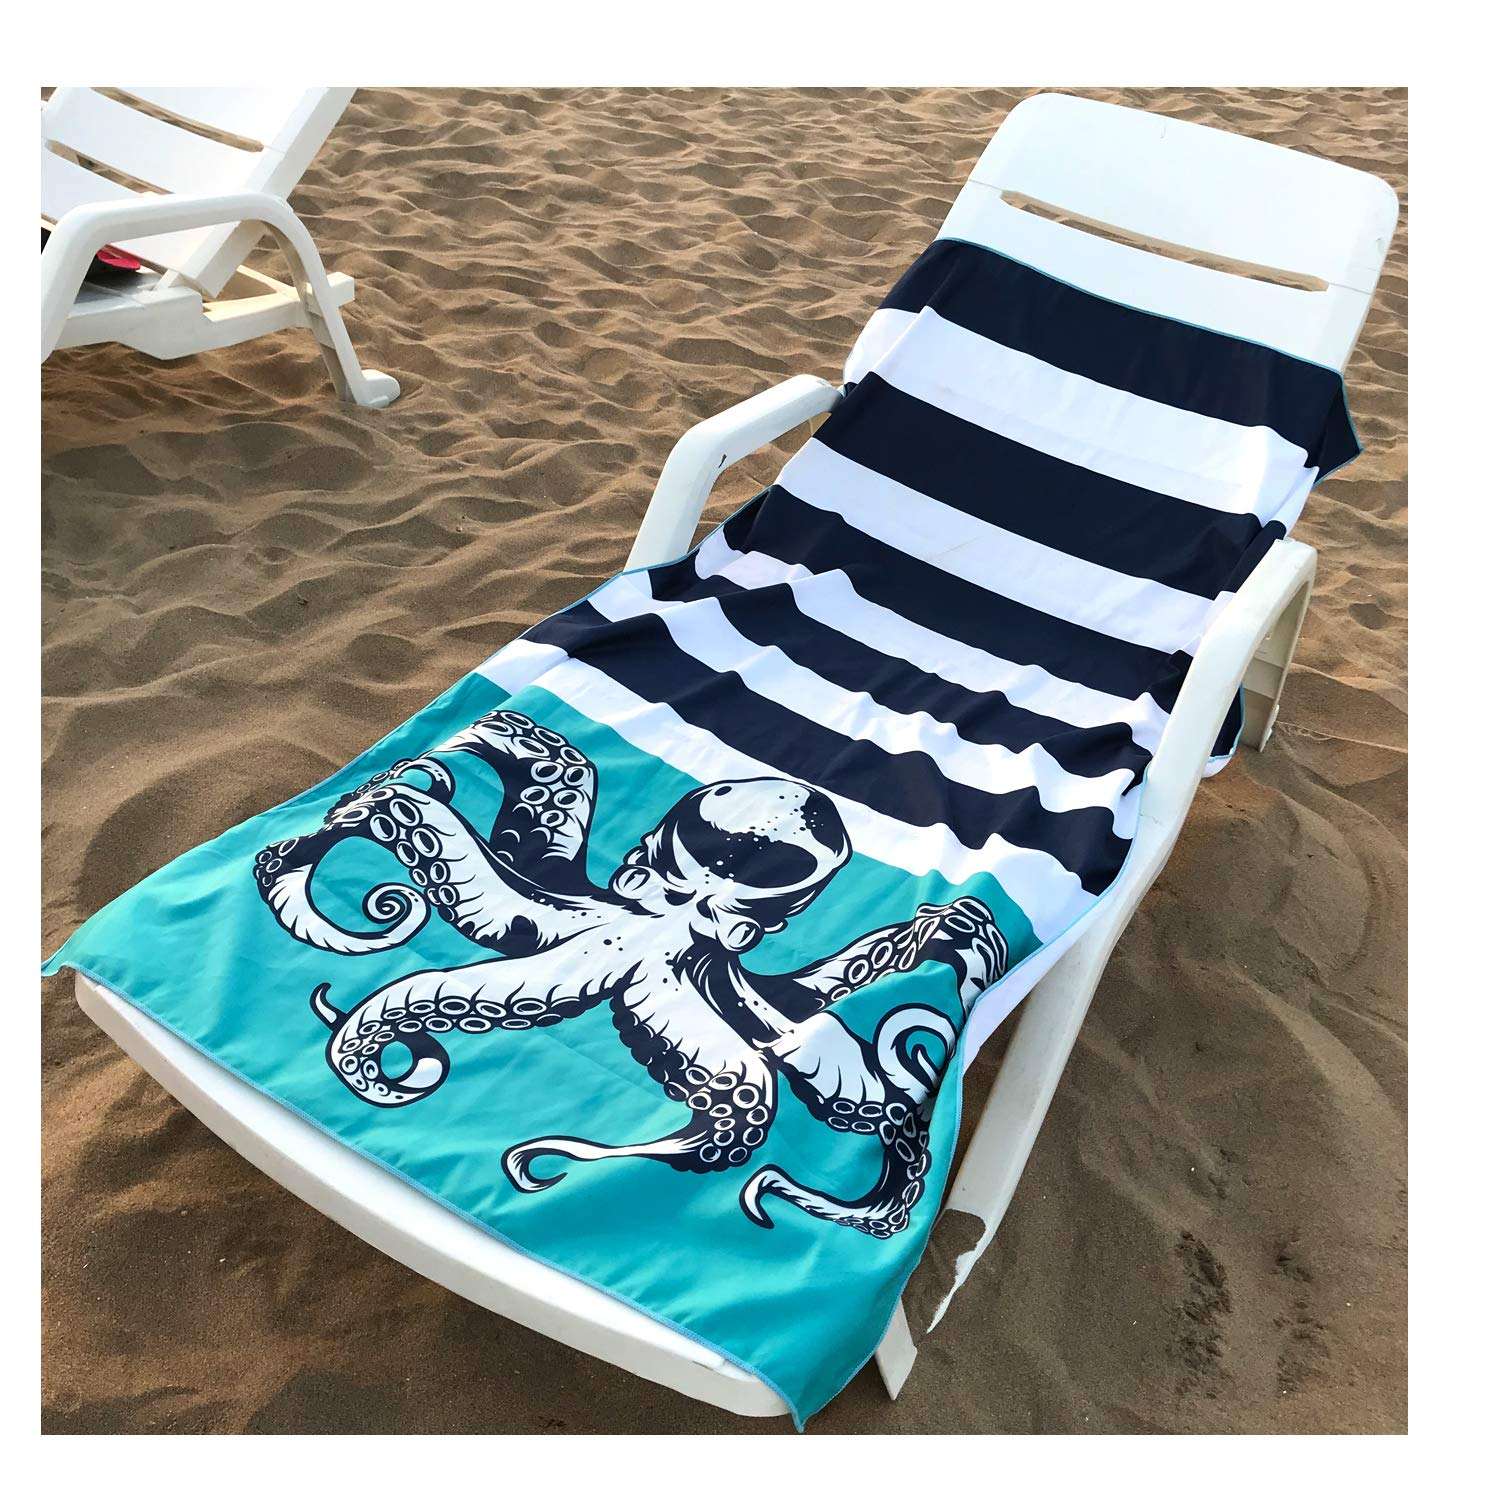 HAPEE Microfiber Beach Towels Overlarge XL 63x32 for Sports, Travel,Swim,Pool- Quick Dry Super Absorbent Lightweight by HAPEE